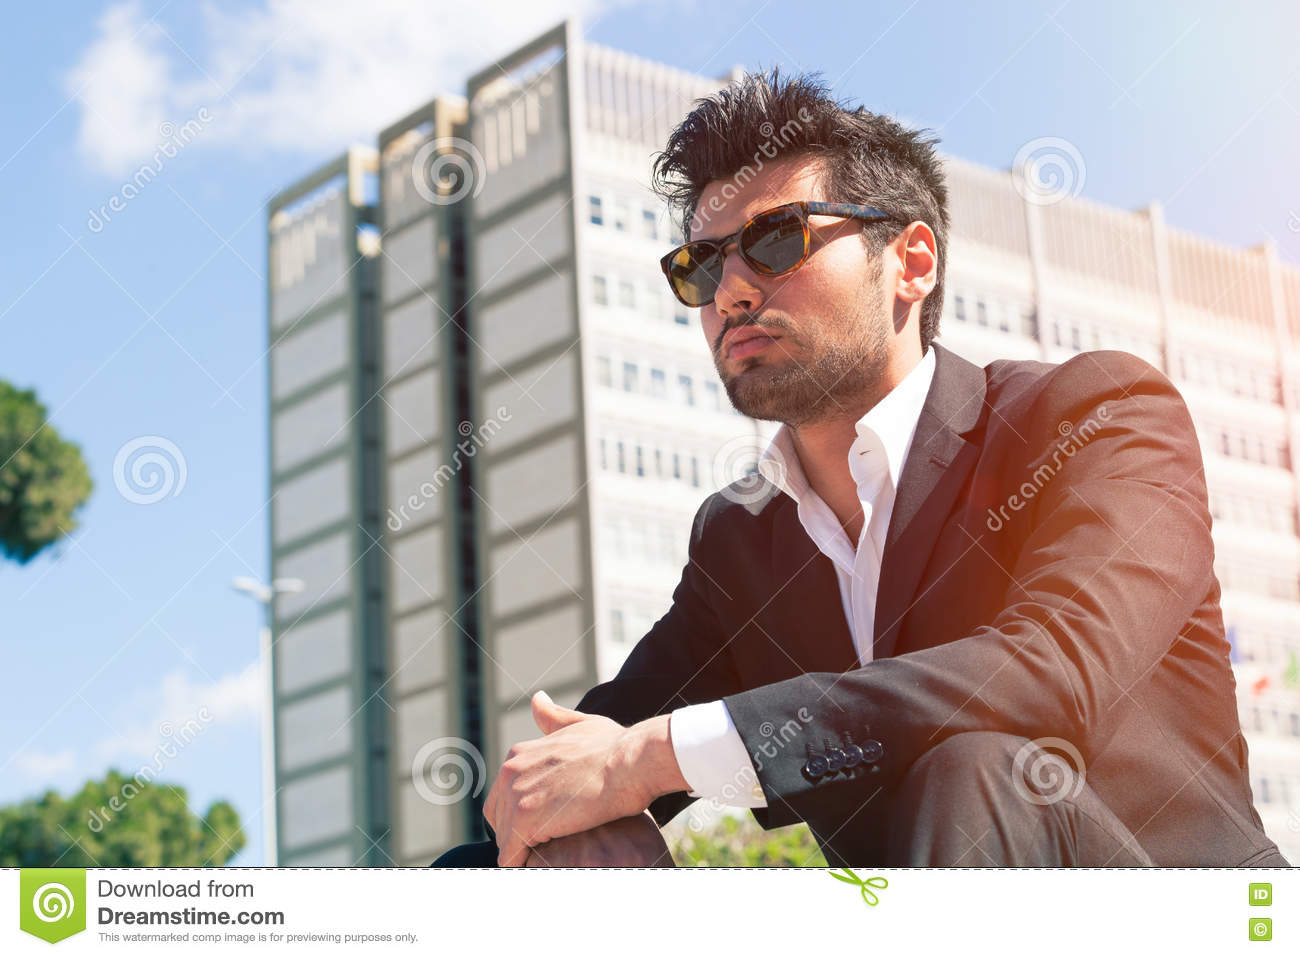 Young handsome man with sunglasses. Career and job opportunities.